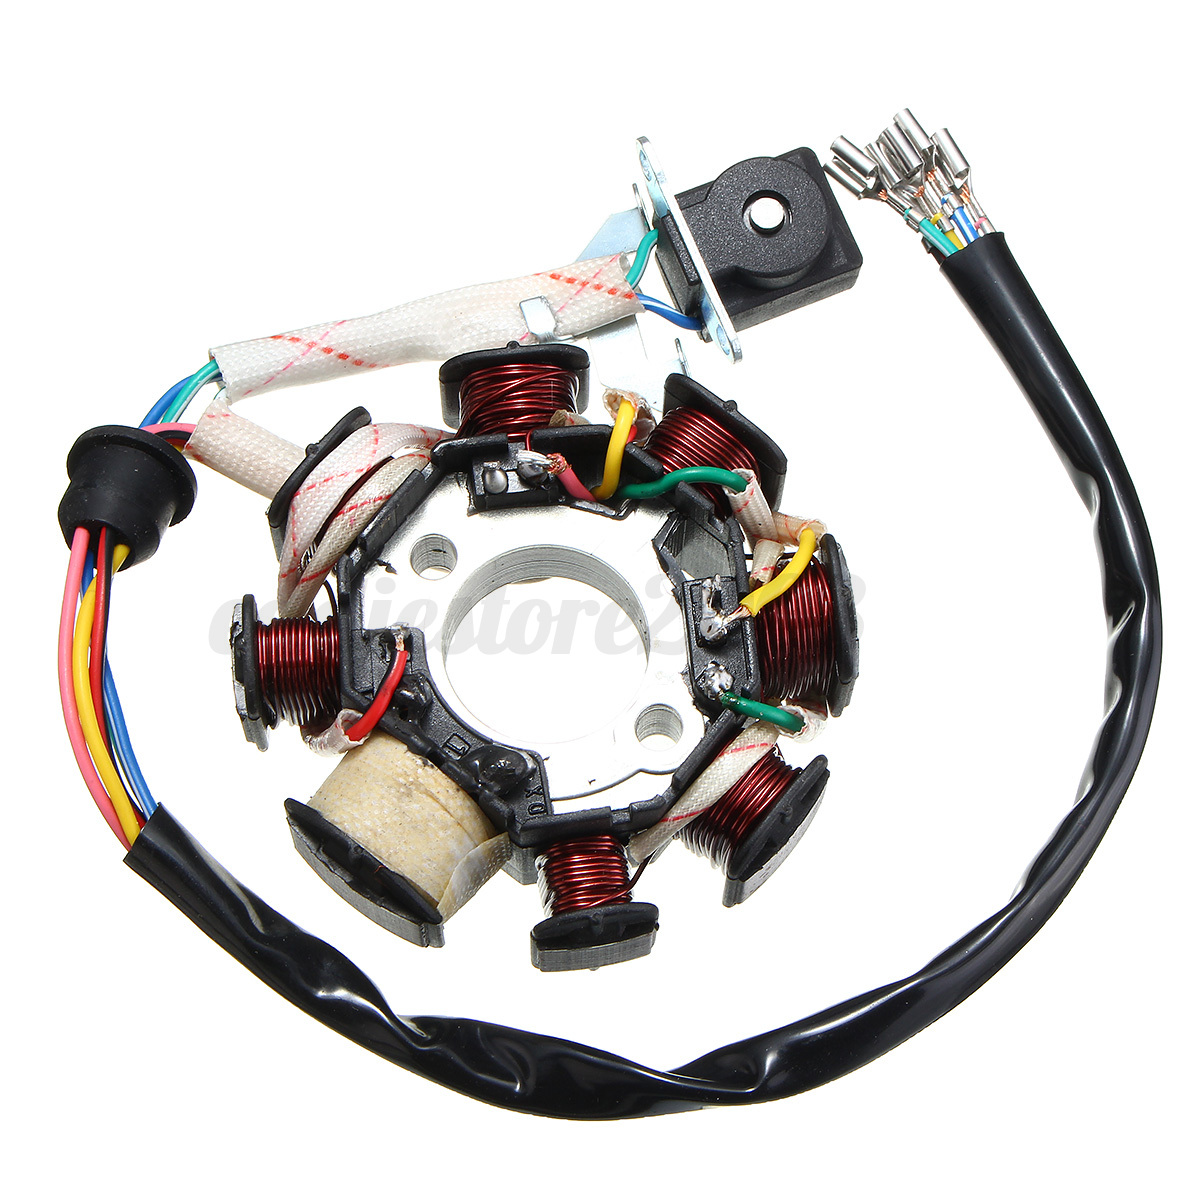 125 150 200 250cc Cdi Wire Harness Stator Assembly Wiring